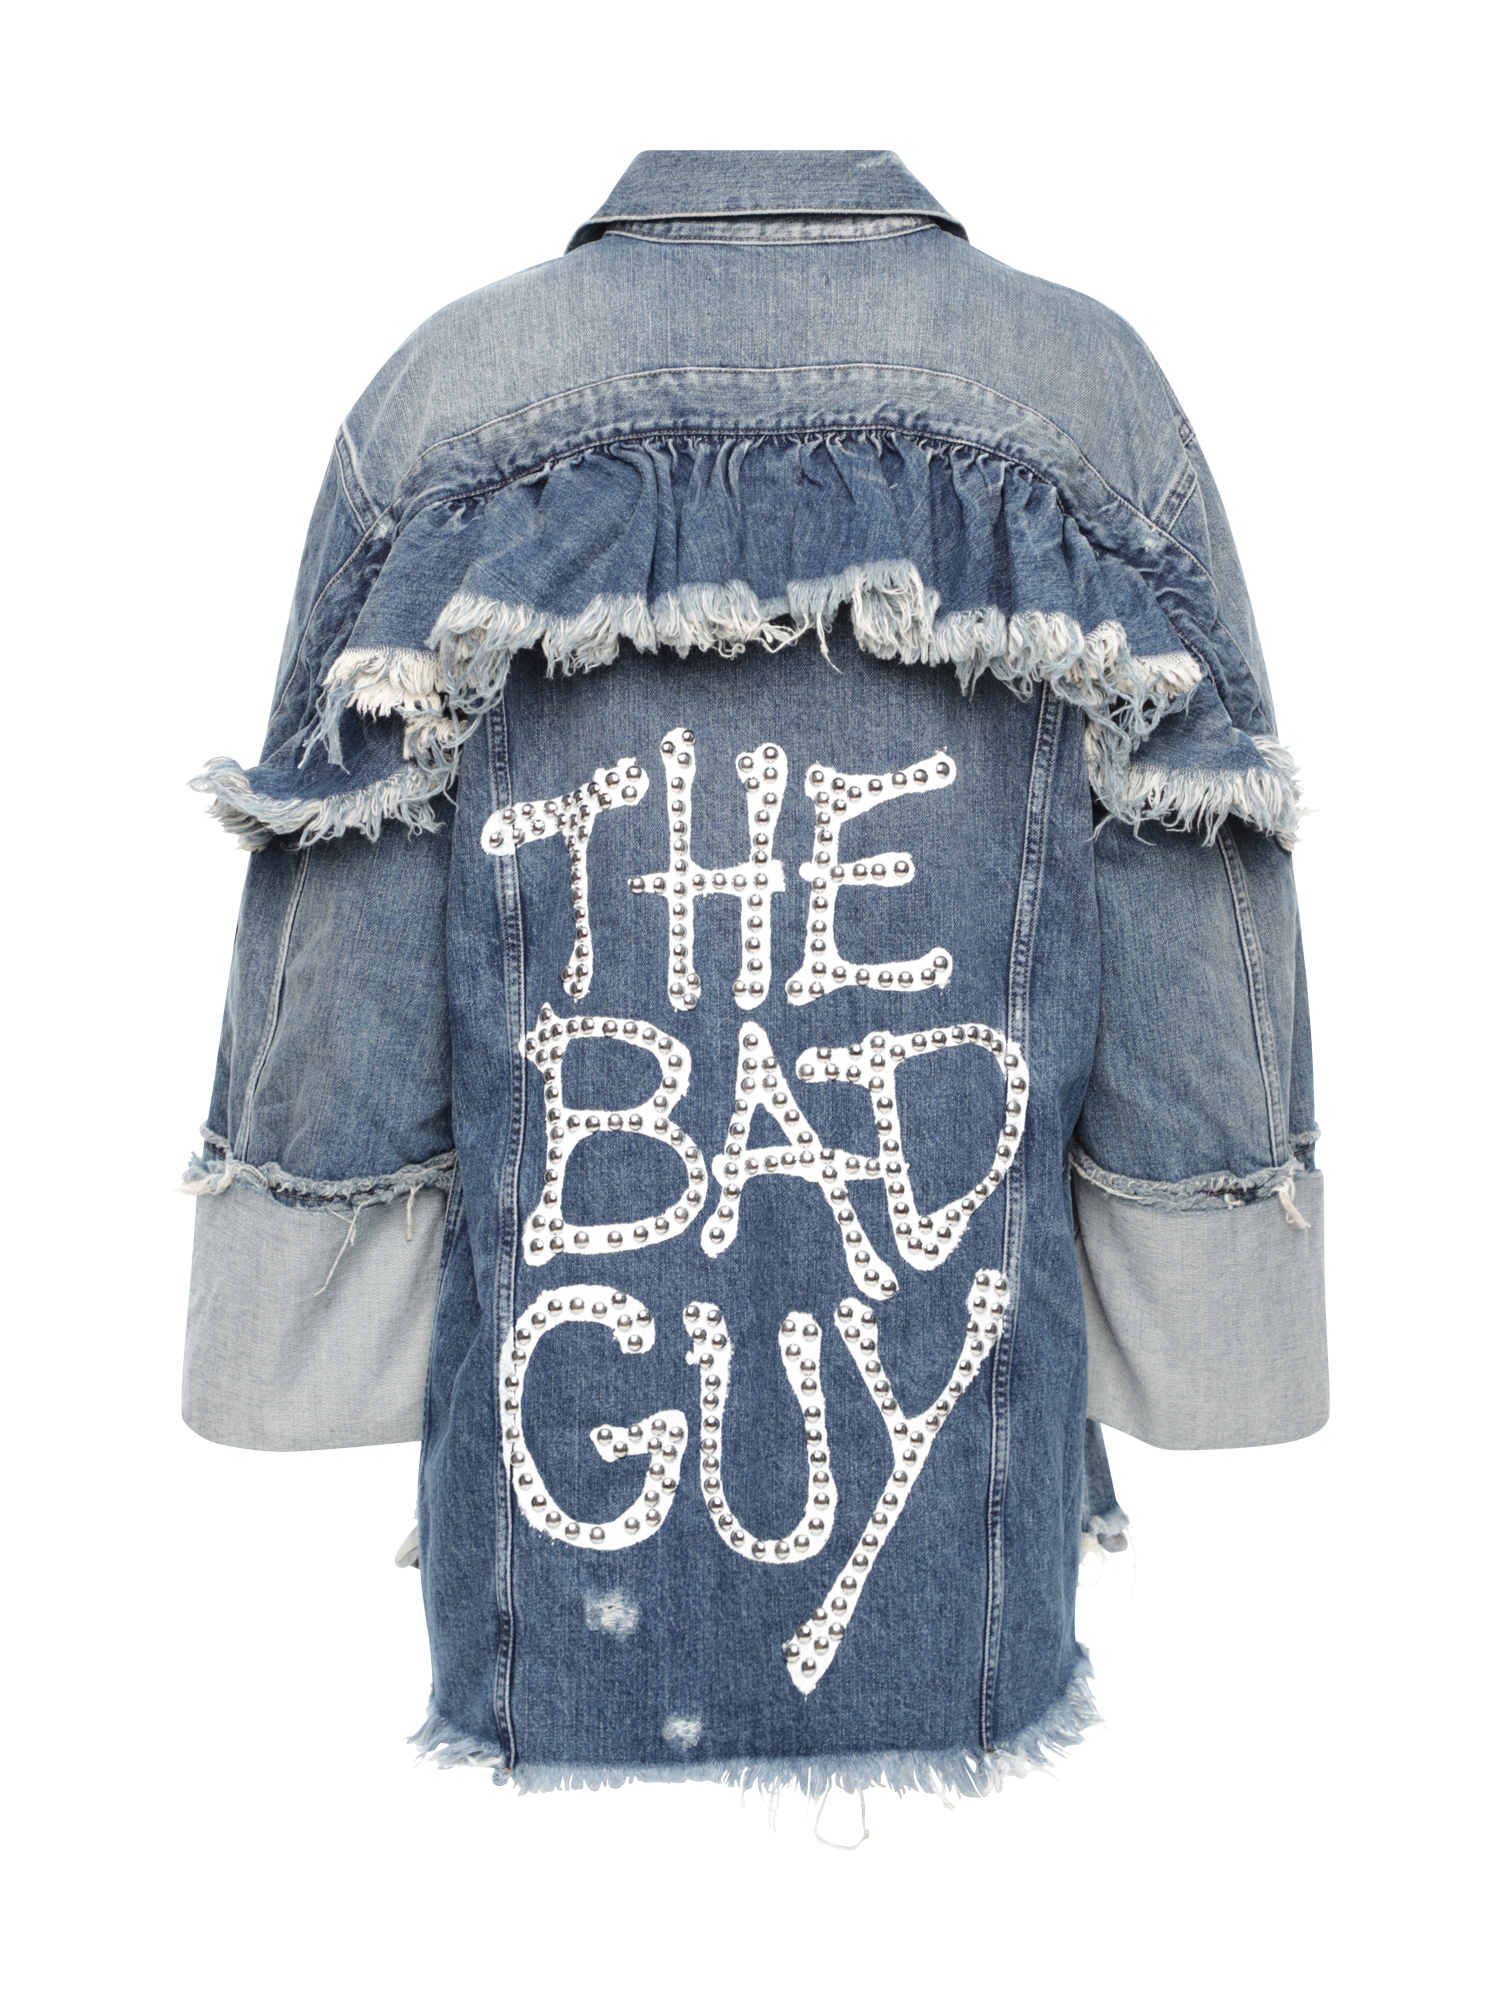 DIESEL HC_THE BAD GUY_00SVDG_0090I_01_BACK.jpg